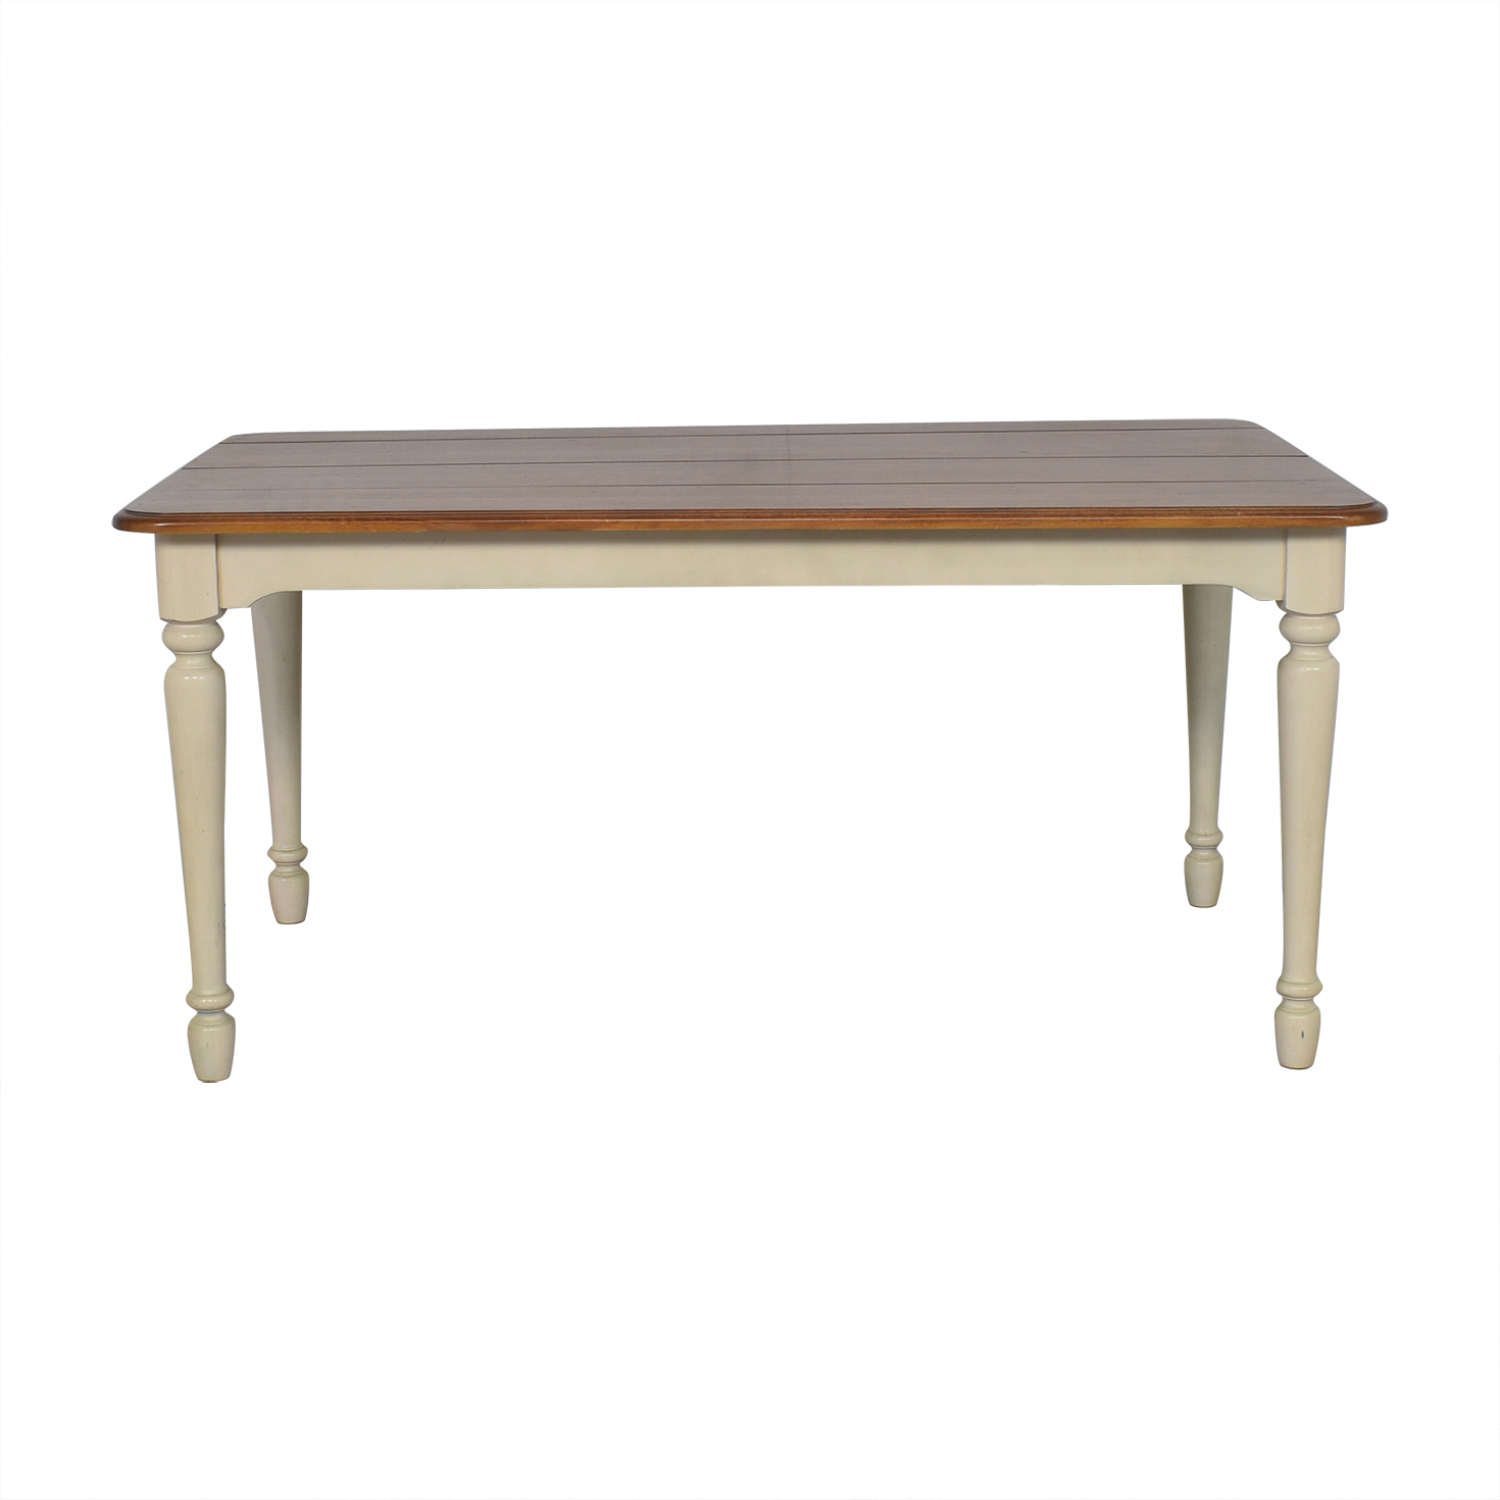 Cresent Furniture Cresent Fine Furniture Farmhouse Style Dining Table nyc